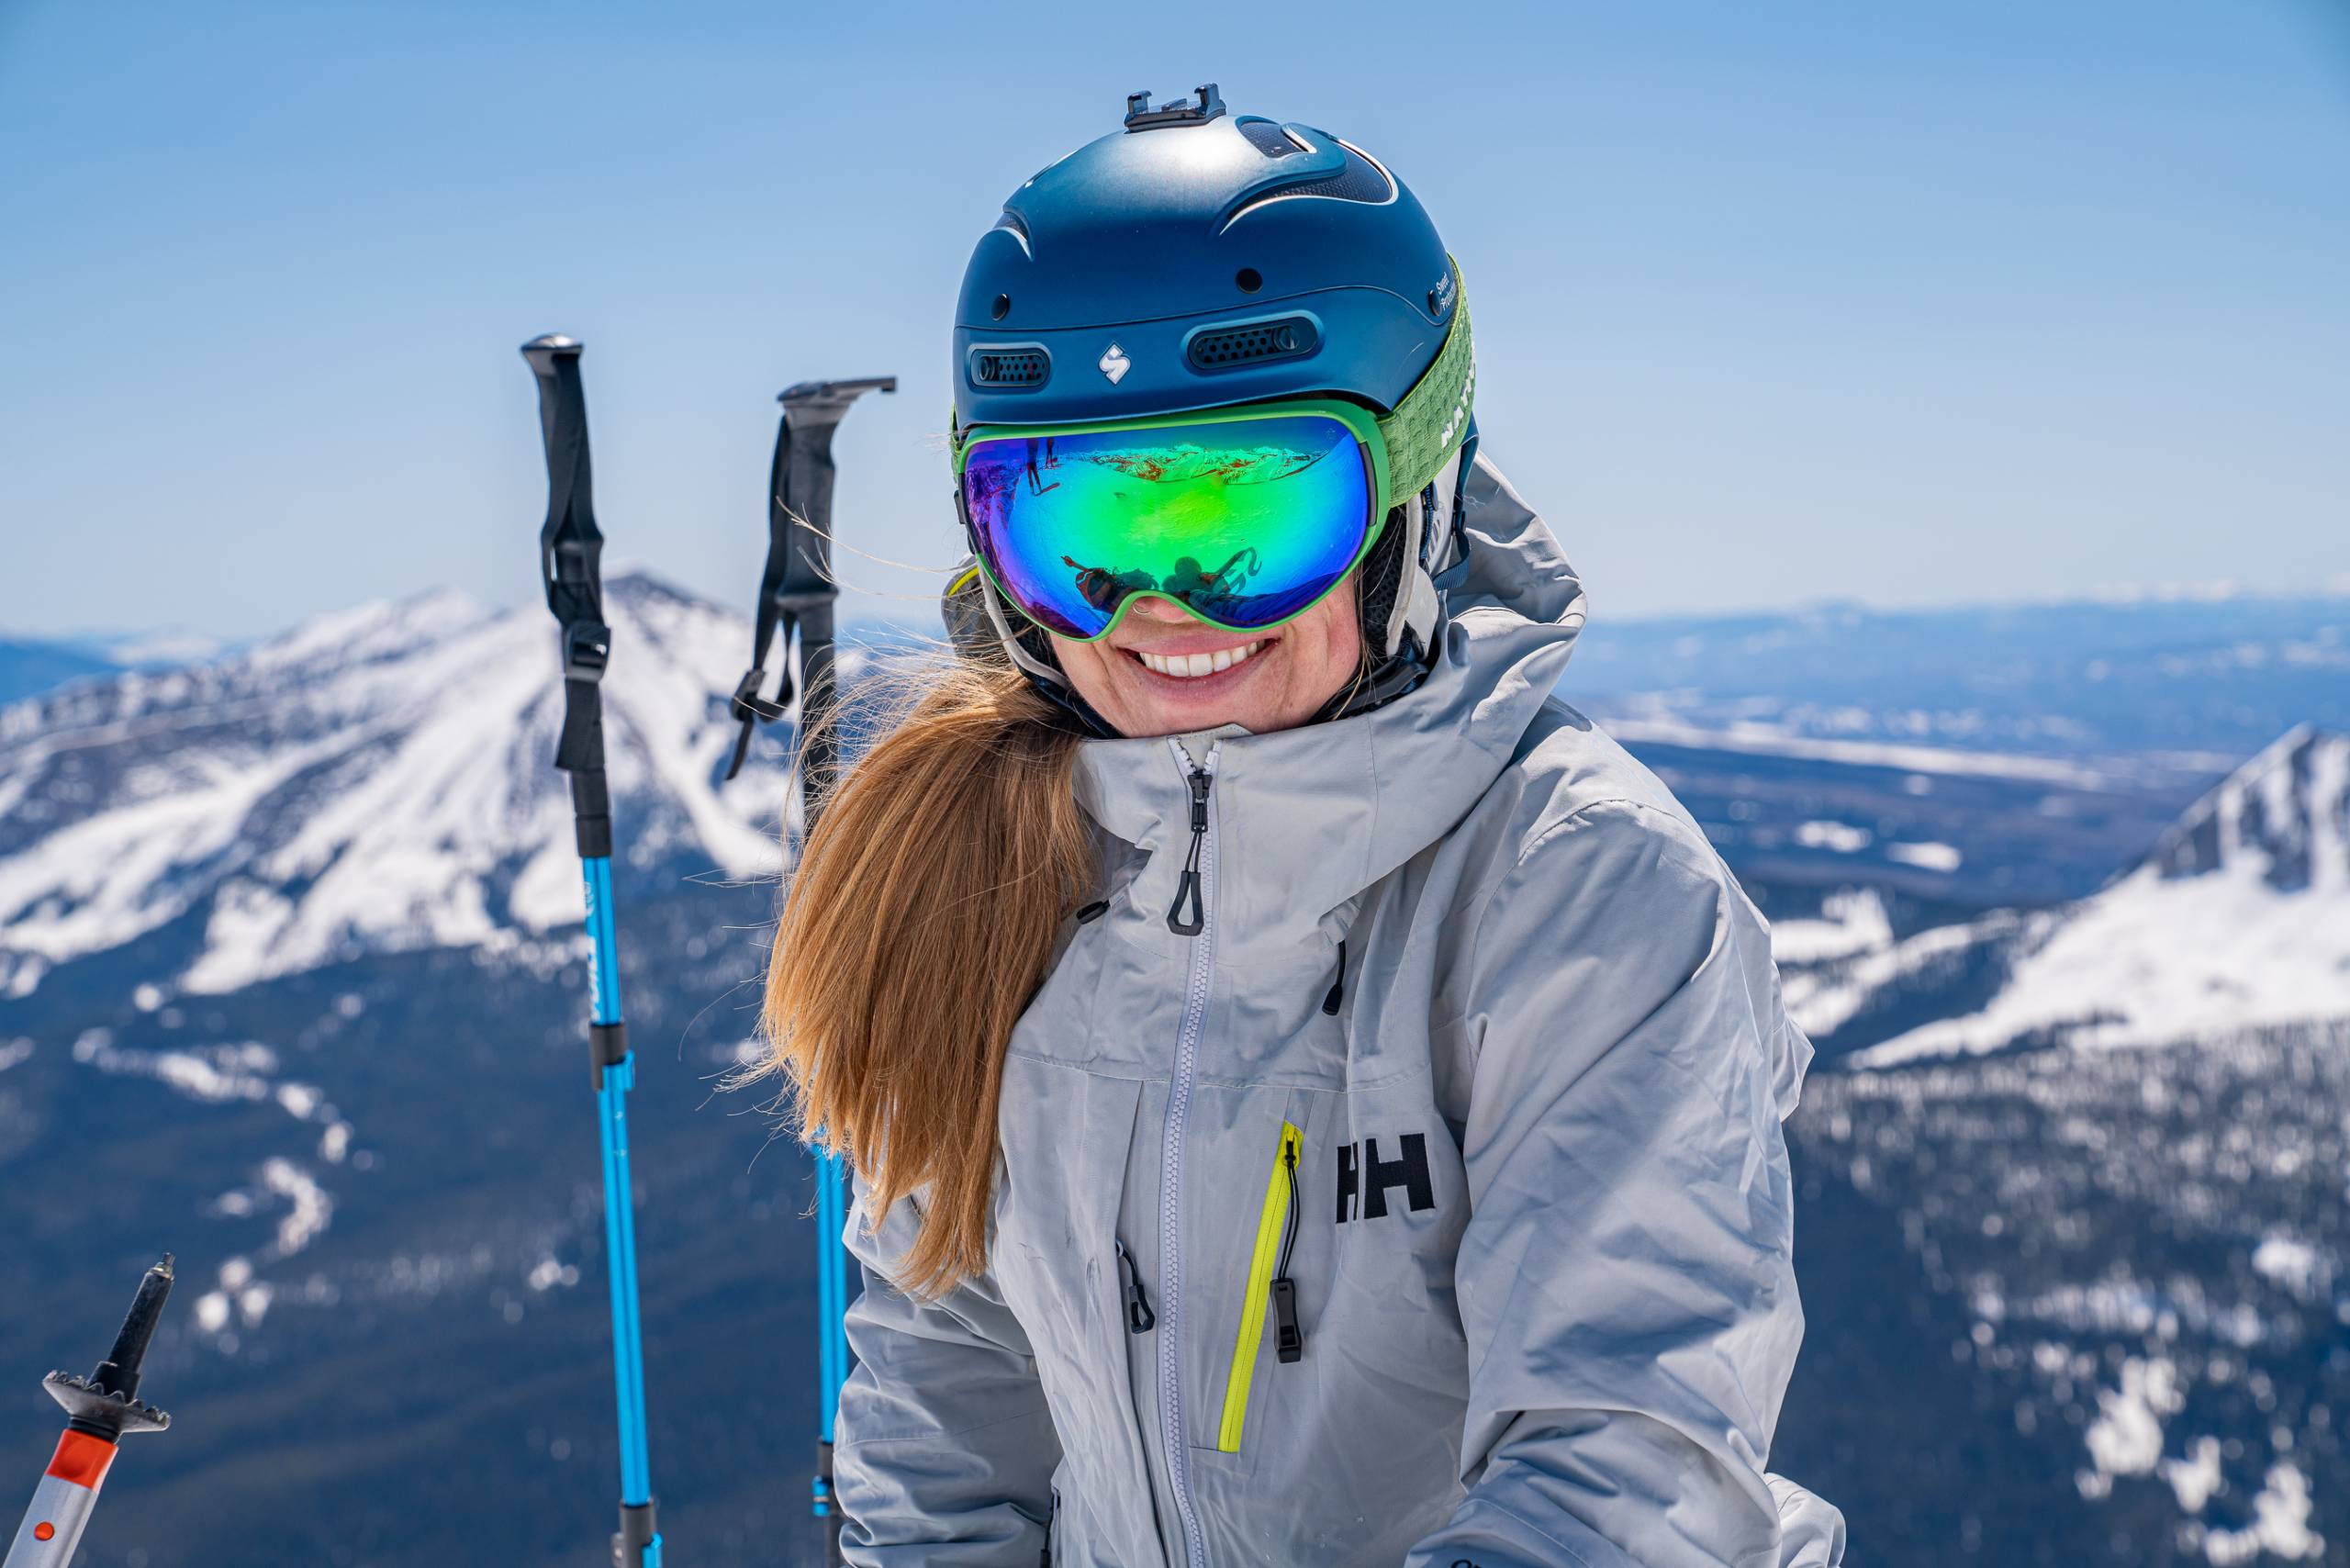 the author in a helmet, goggles, and the new Helly Hansen Pro insulated jacket